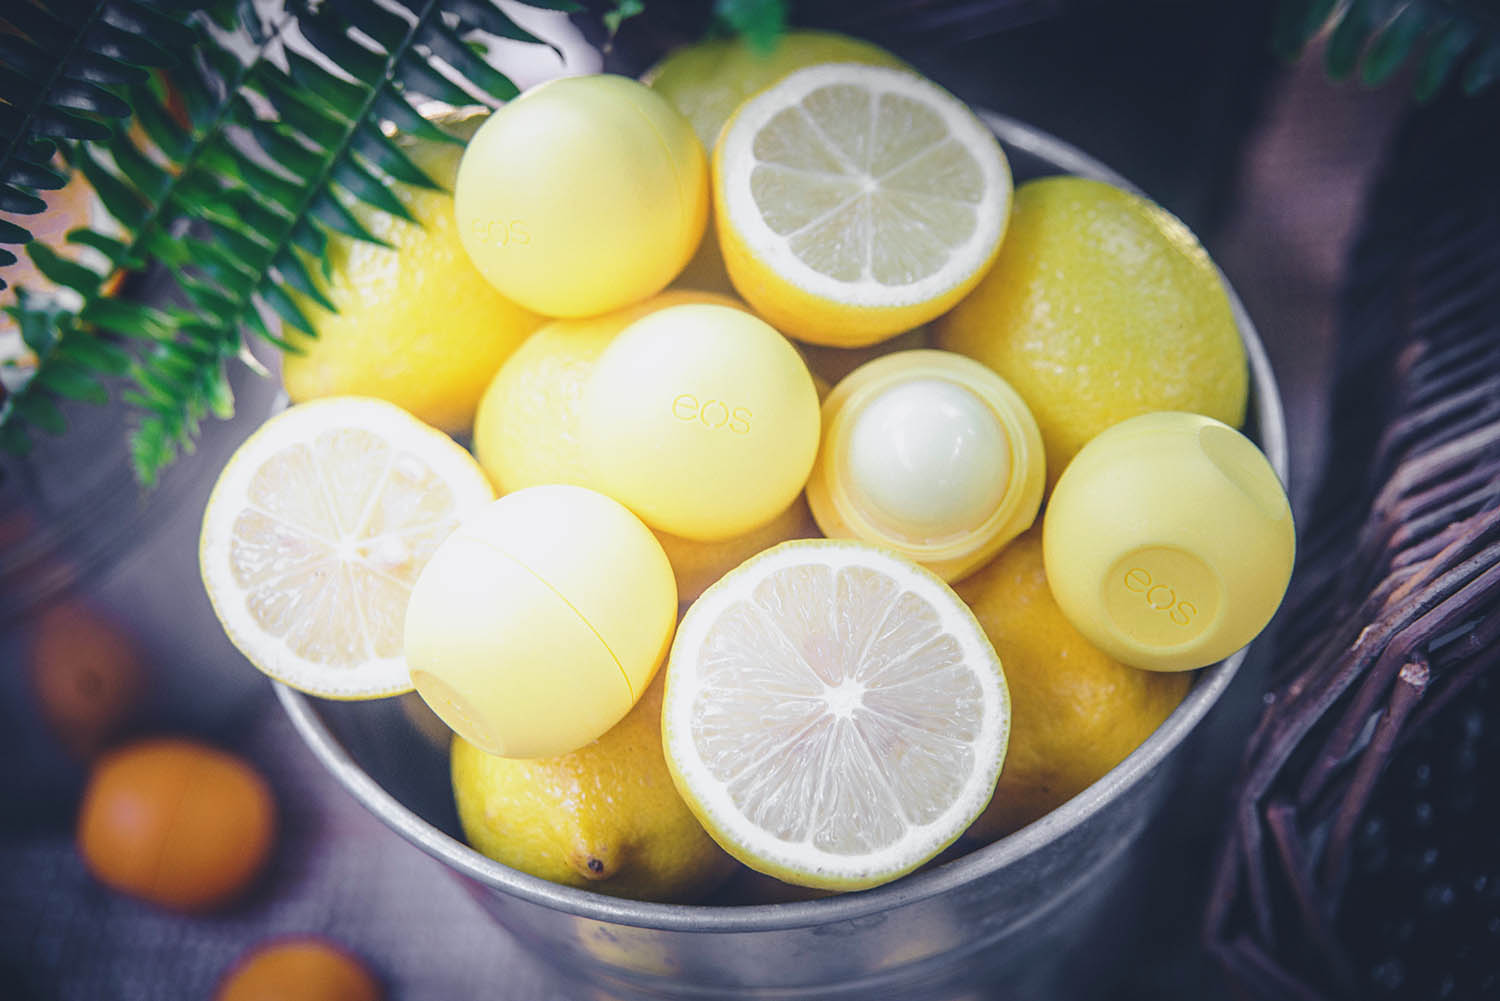 Eos Smooth Sphere Lemon Drop Lip Balm SPF 15